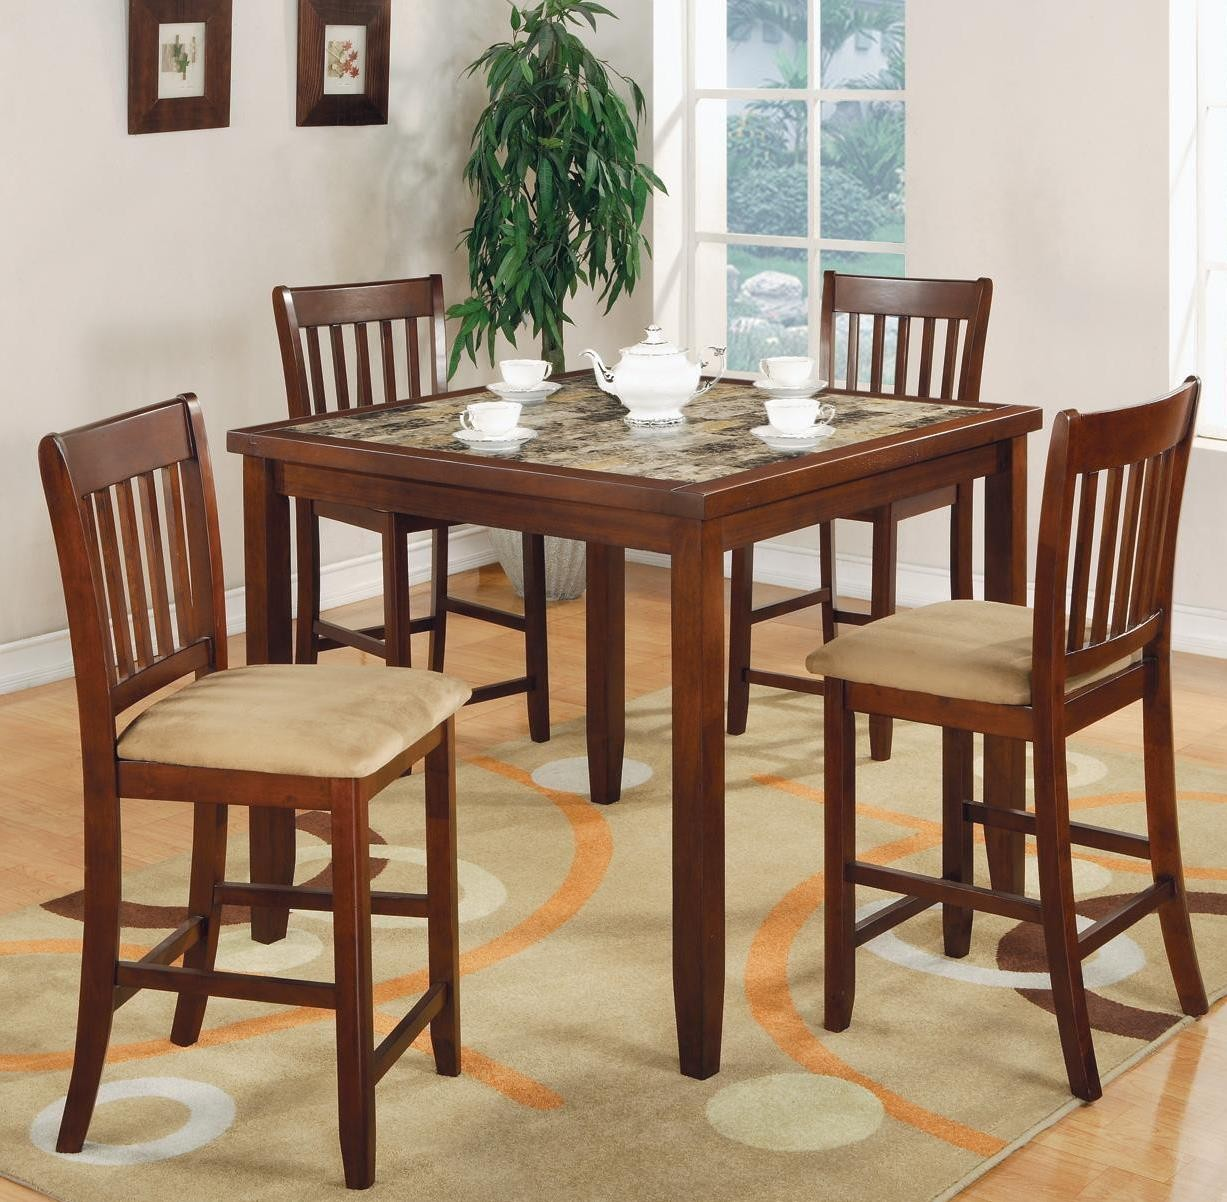 Cherry Dining Room Set: Normandie Cherry 5 Pcs Counter Height Dining Room Set From